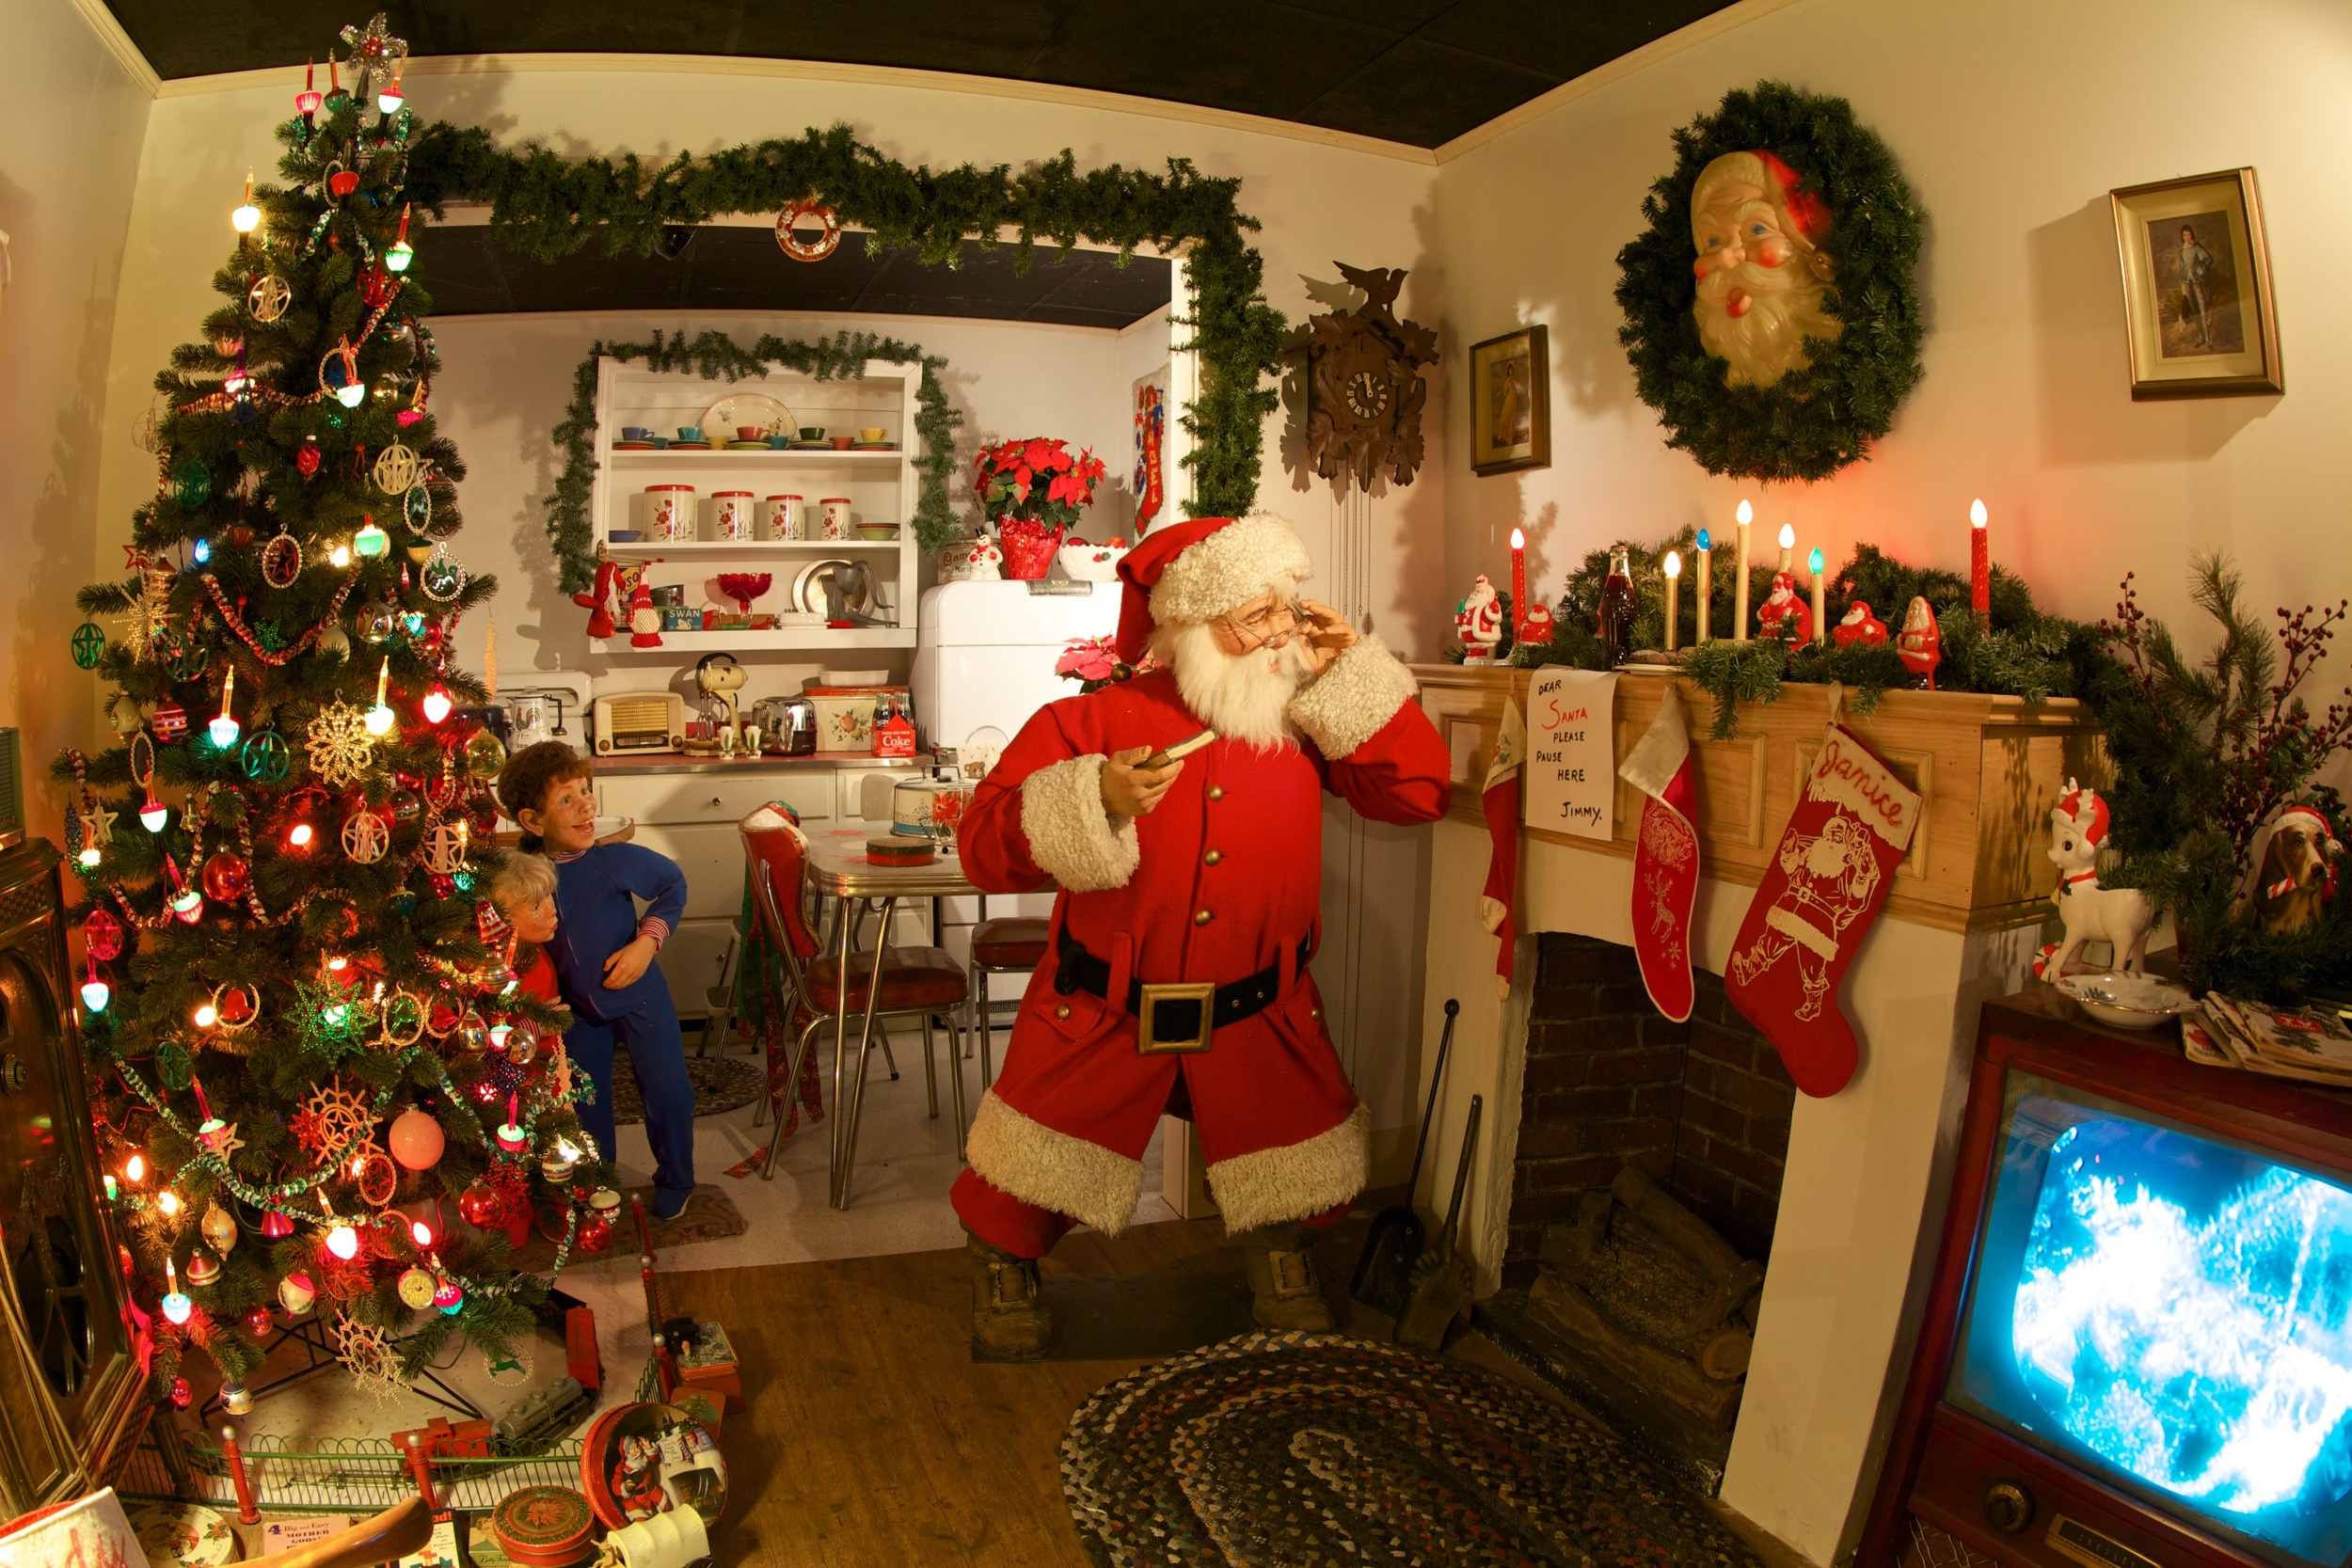 Figure 7: The National Christmas Center's exhibit  1950's Night Before Christmas is a life-sized reproduction of a famous vintage Coca-Cola advertisement. Two children are shown spying on Santa Claus late on Christmas Eve. A bottle of Coke has been left on the mantel for Santa.